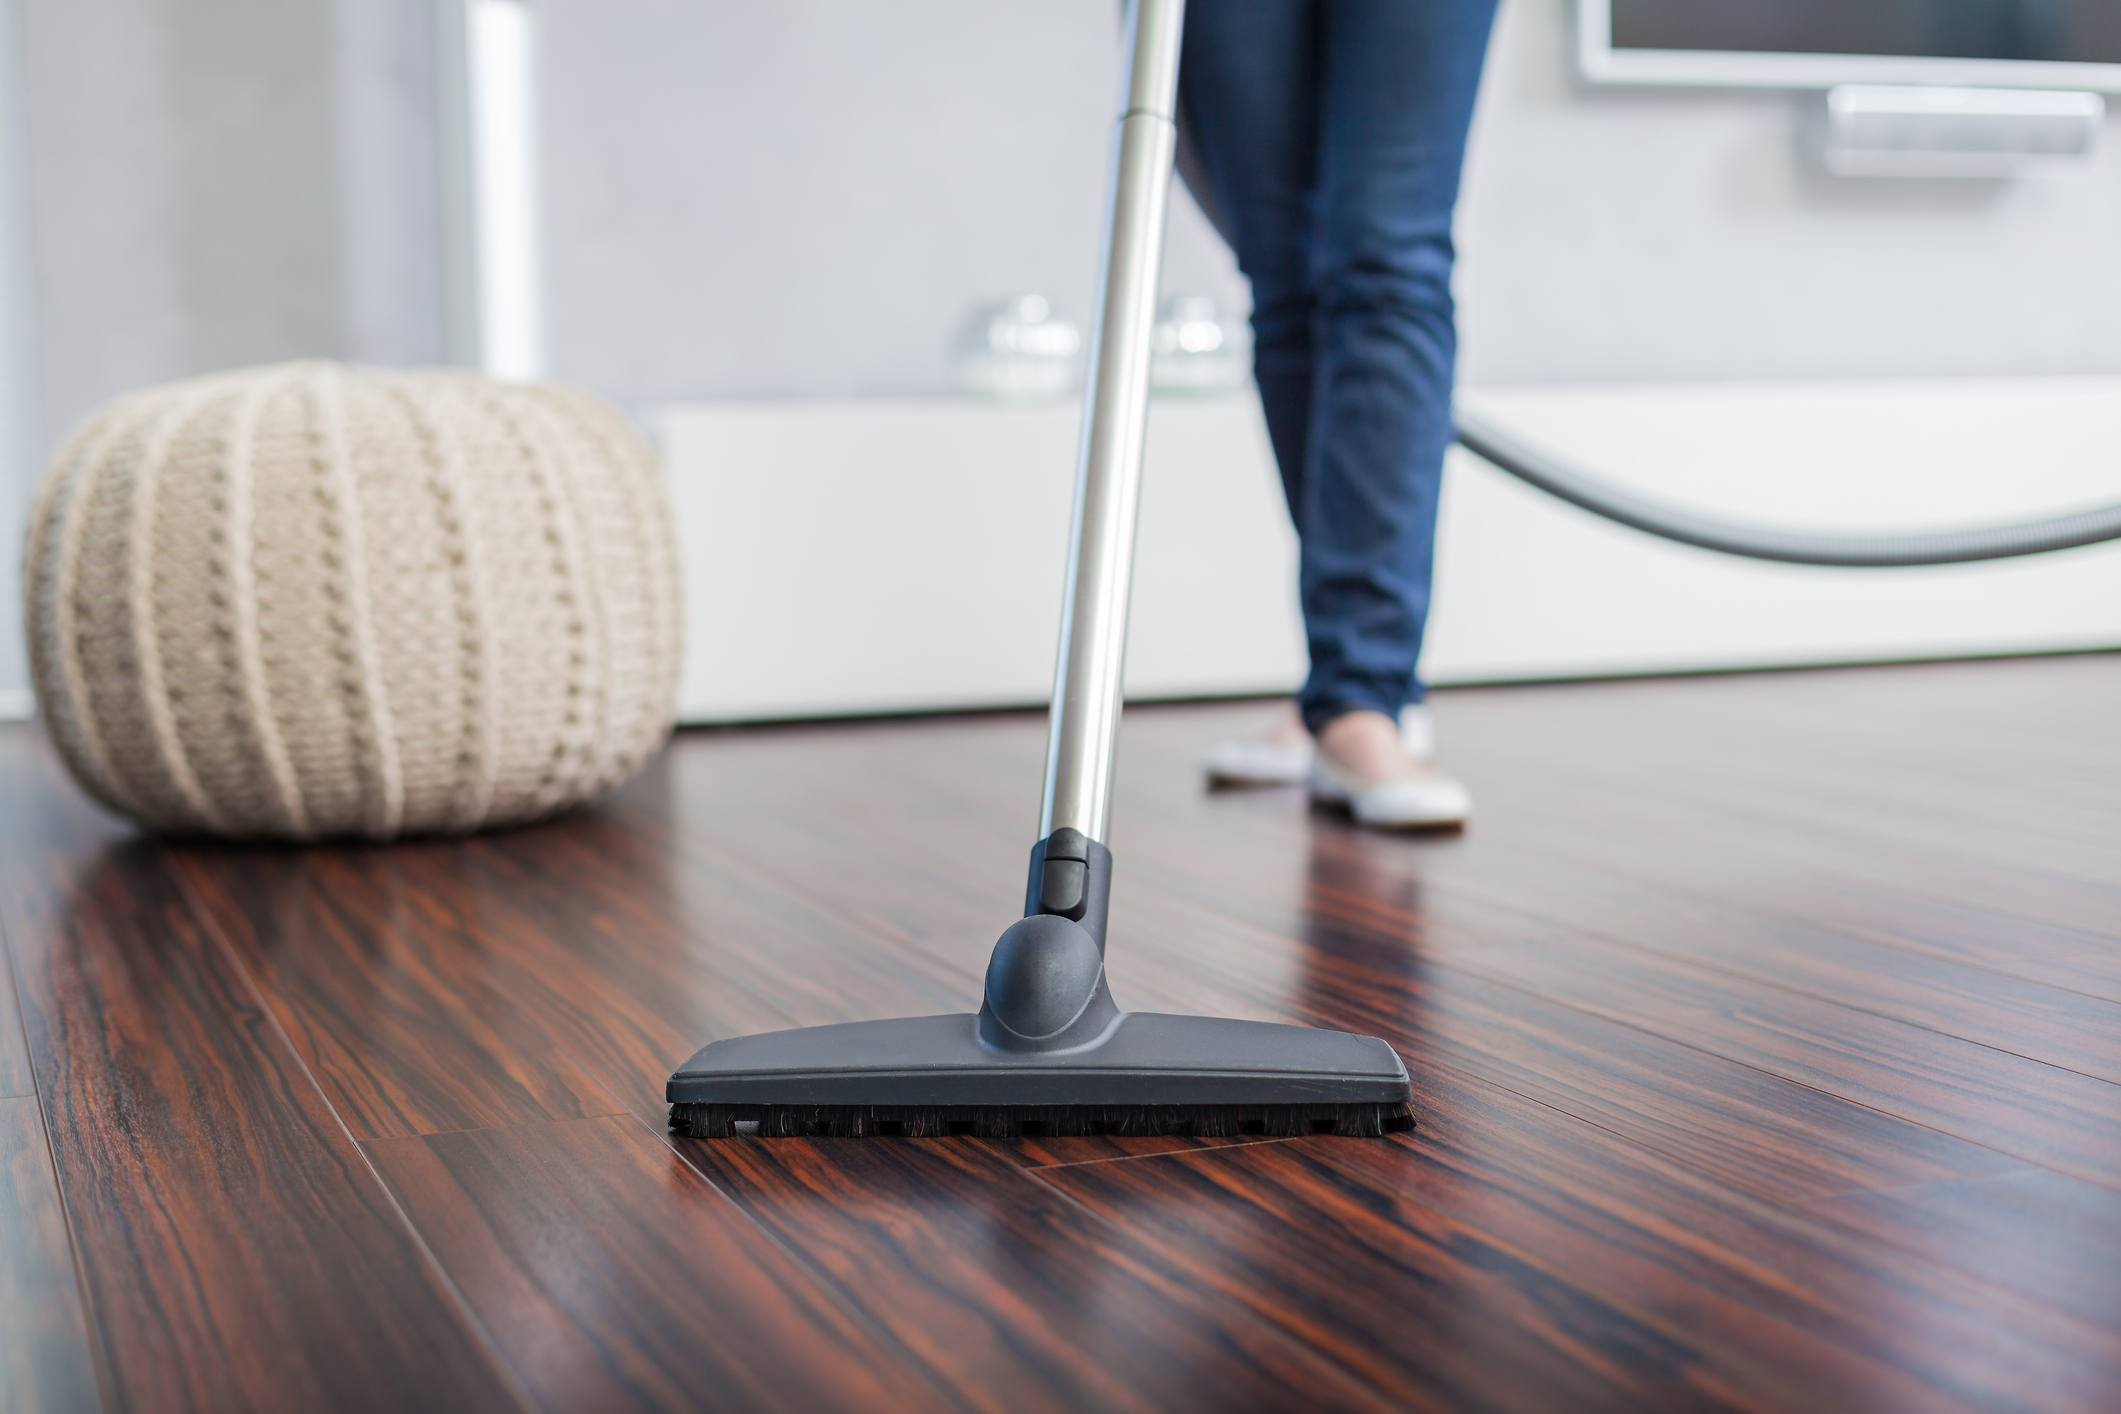 cnet video wood corded vacuum floor with forever vacuums cyclone dyson to fl videos goodbye says